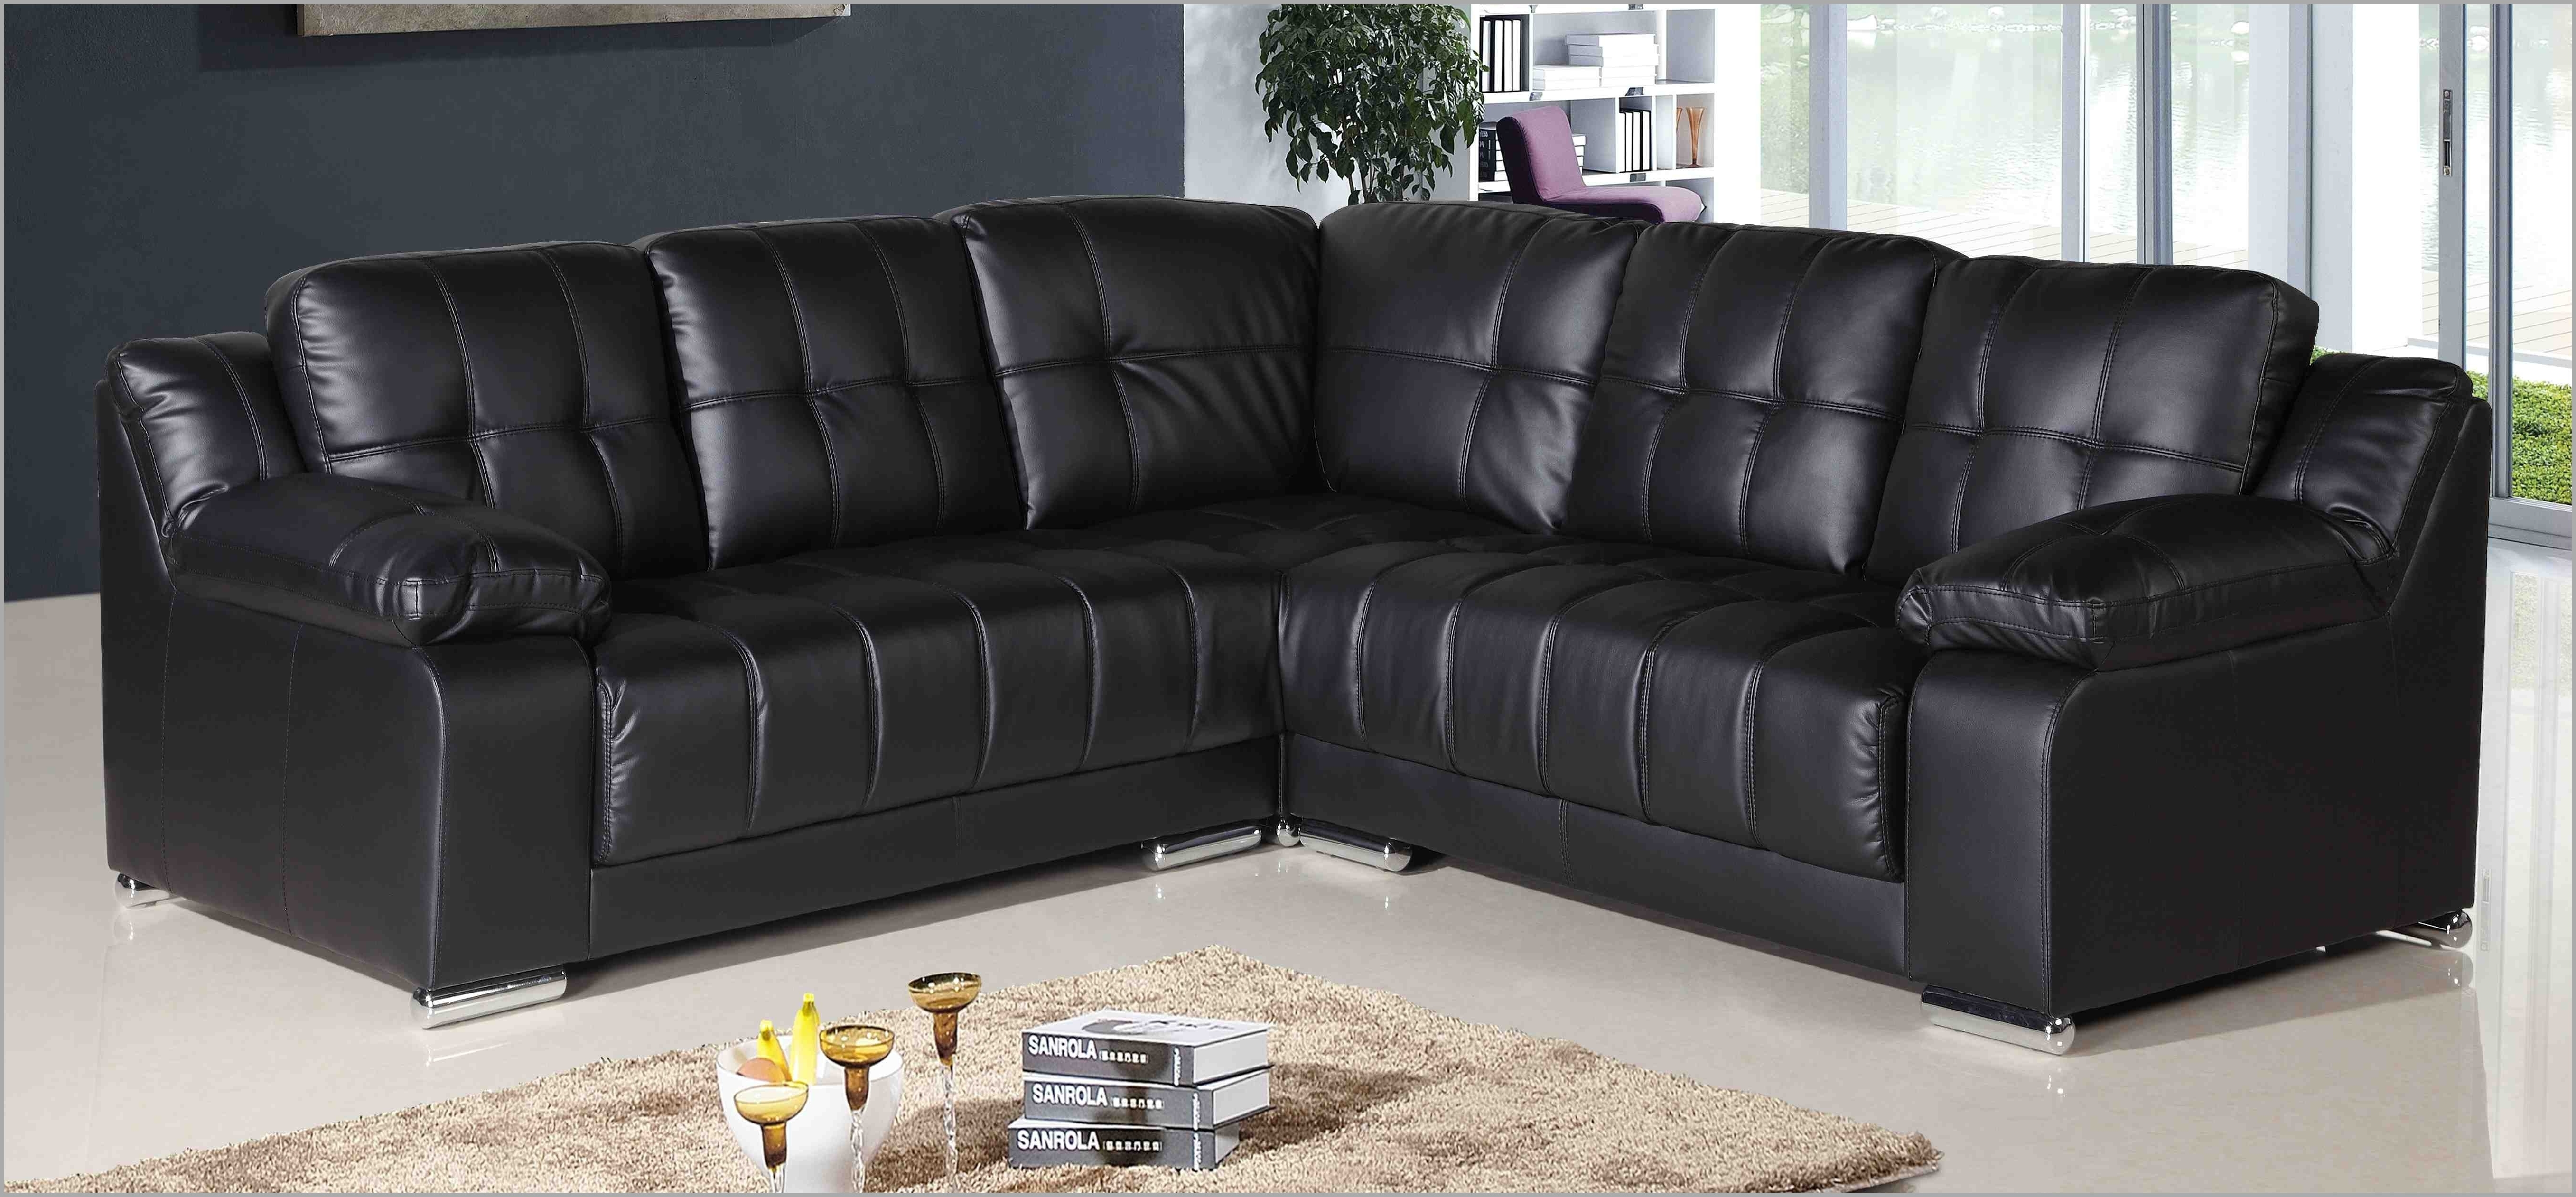 Inspirational Cheap Black Corner Sofa – Mediasupload Regarding Current Cheap Black Sofas (Gallery 5 of 15)